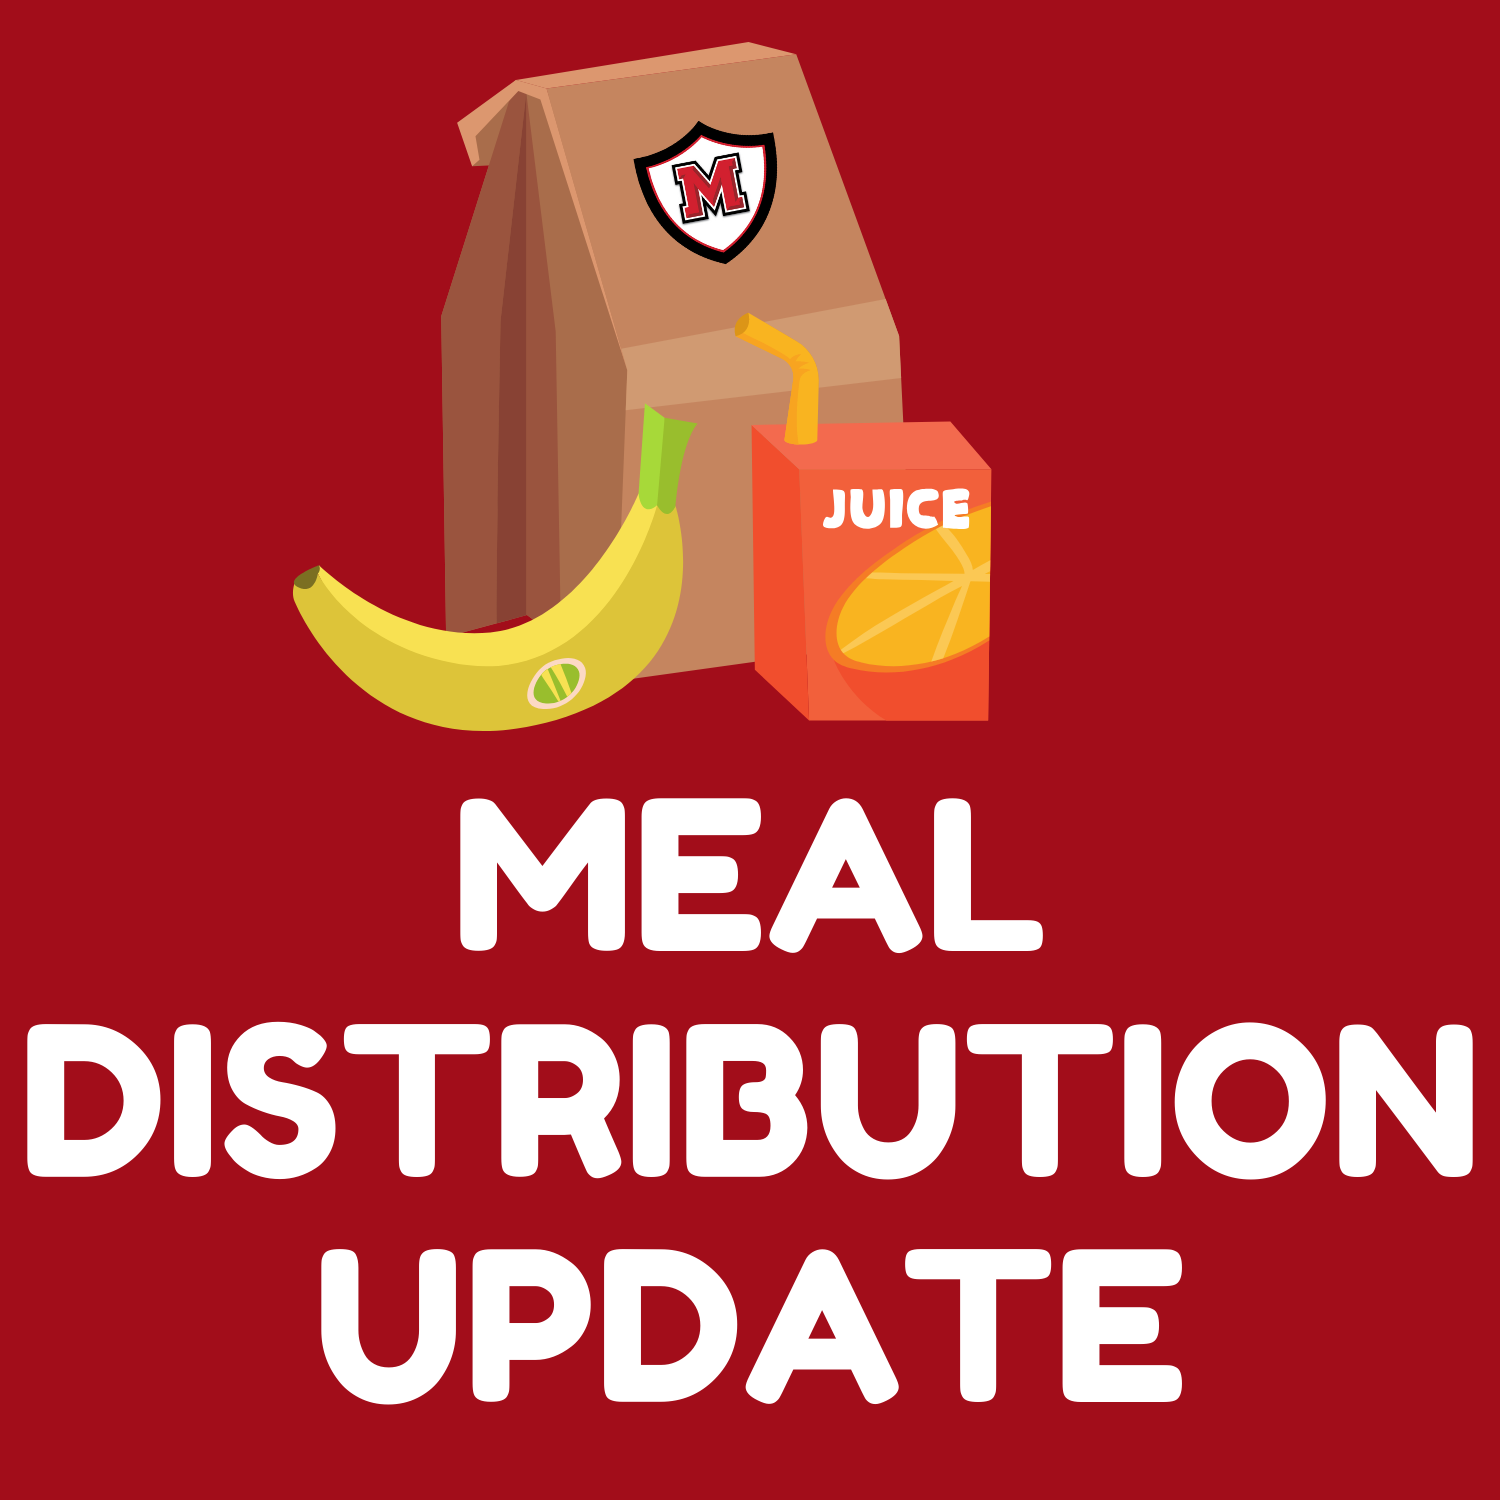 UPDATE: Manor ISD Reduces Meal Distribution to One Location